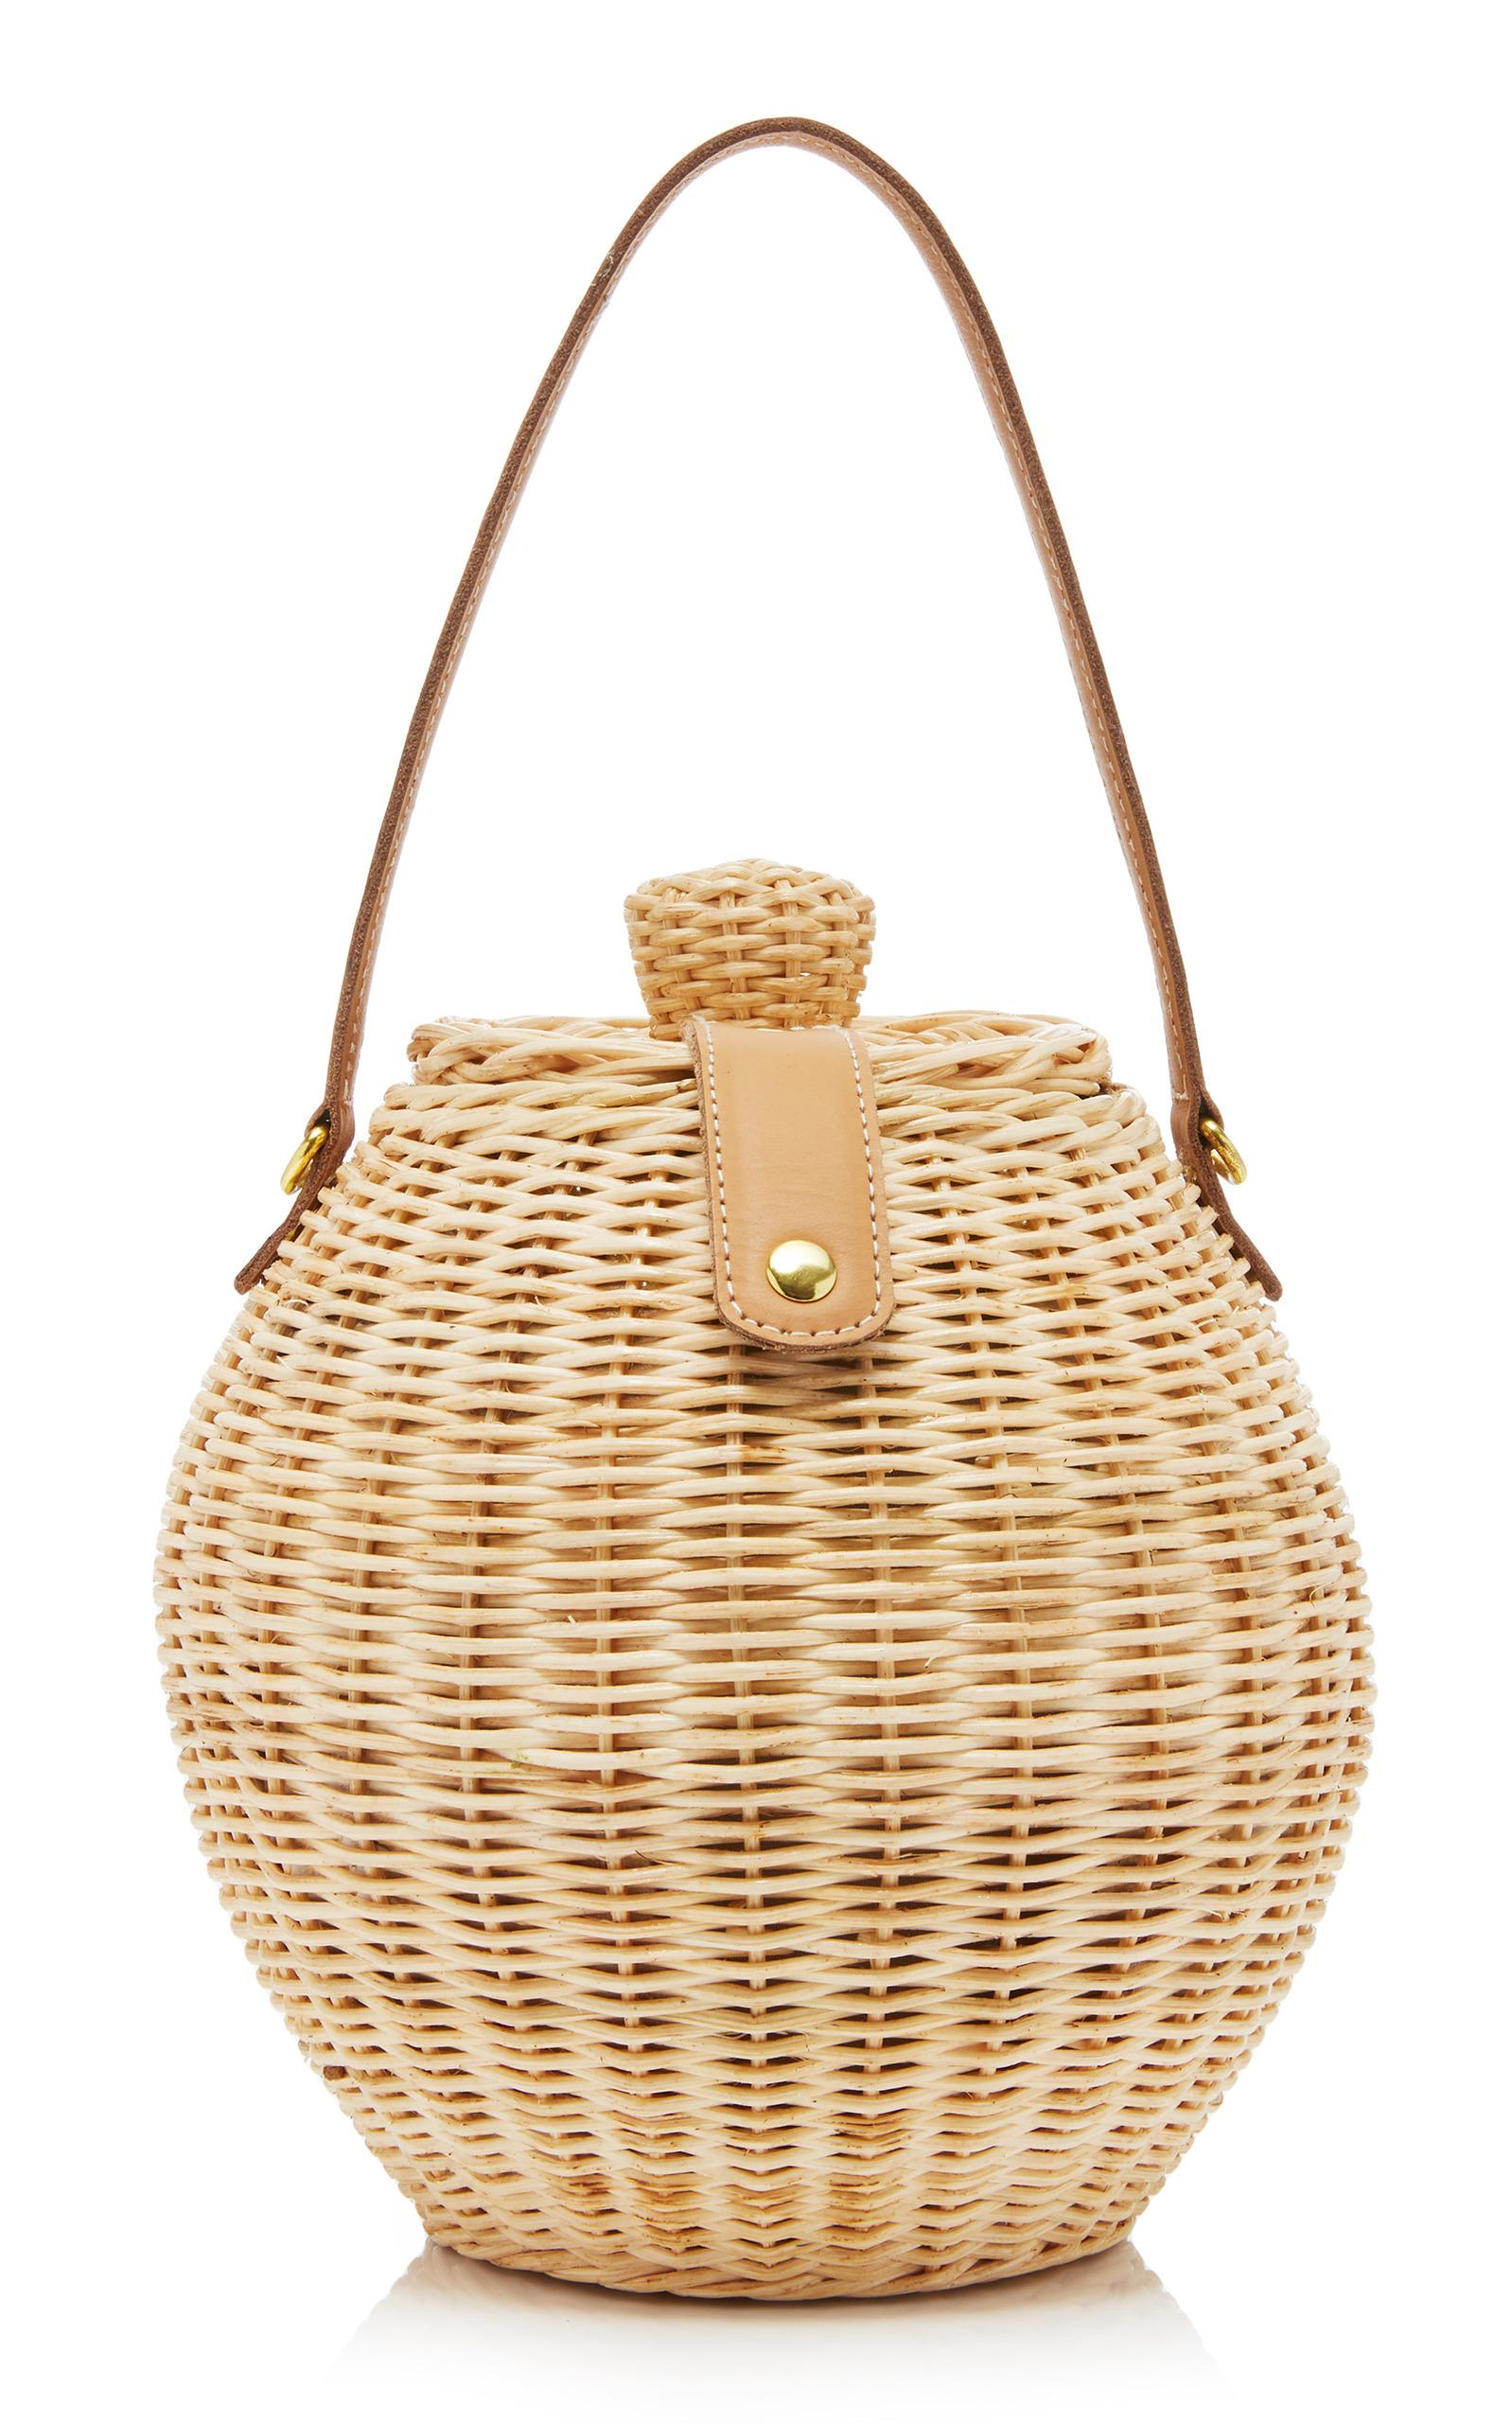 Ulla Johnson Tautou Basket In Neutral